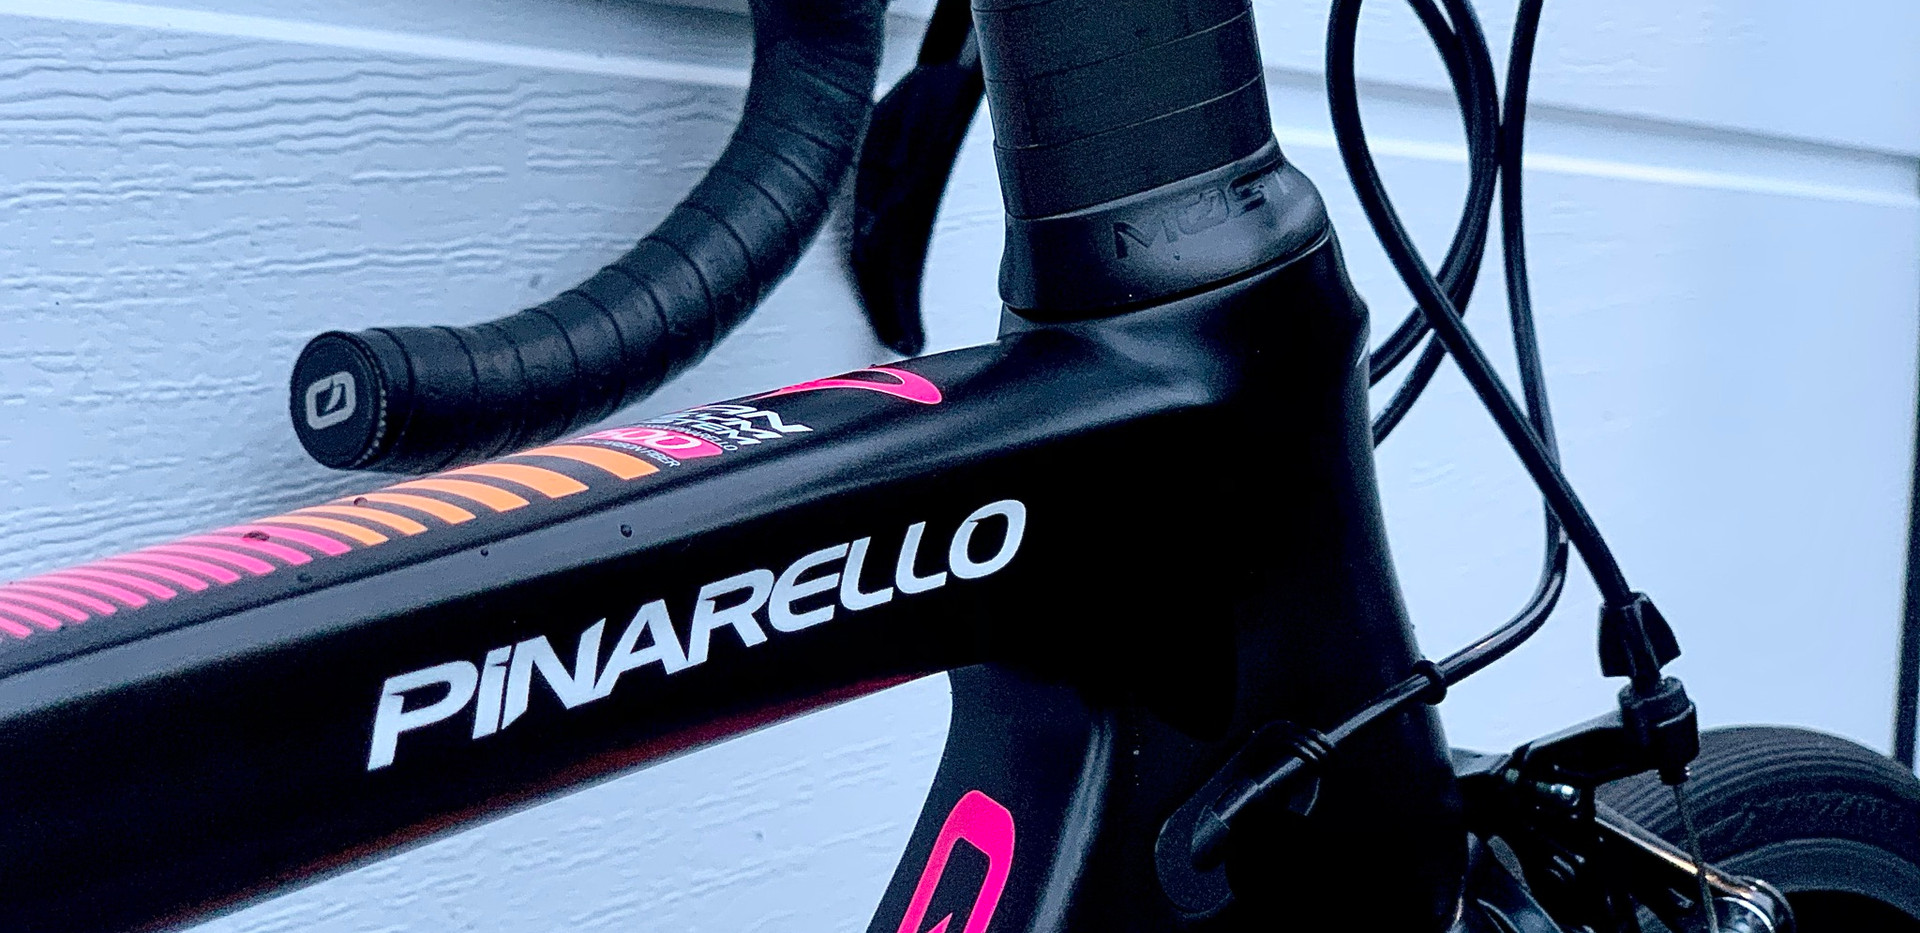 Detailed Pinarello